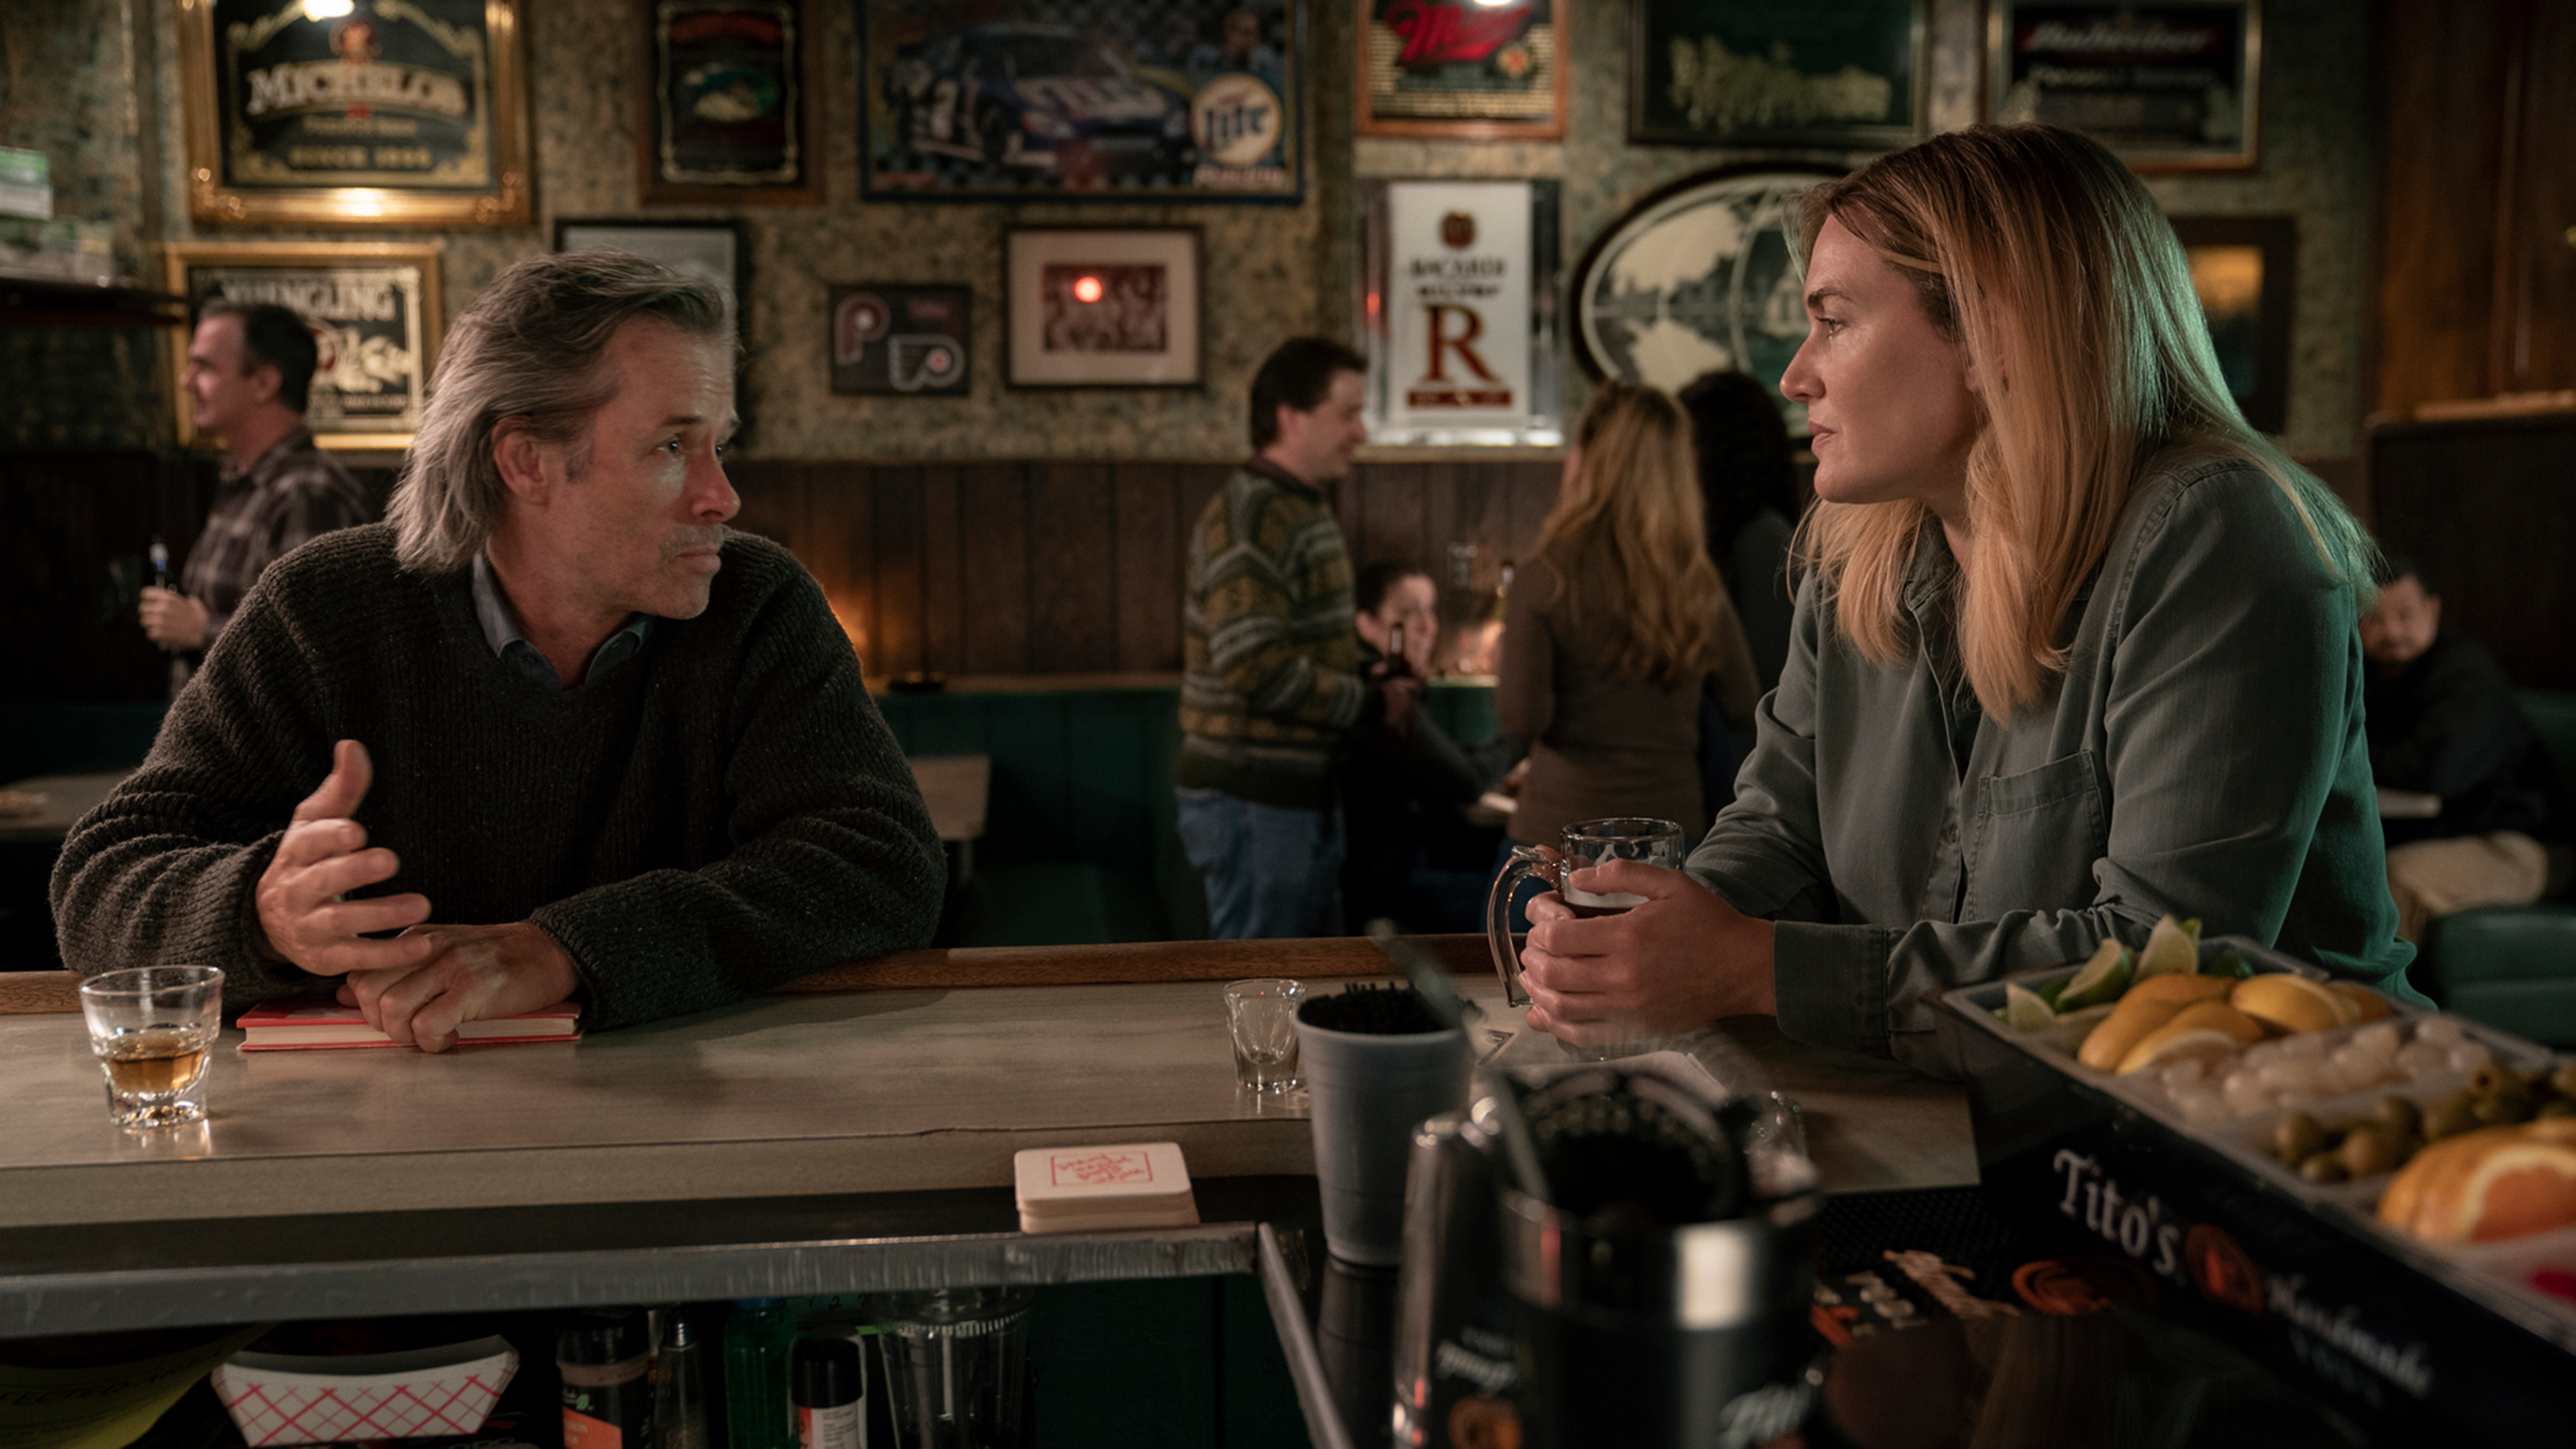 Mare of Easttown — Kate Winslet and Guy Pearce